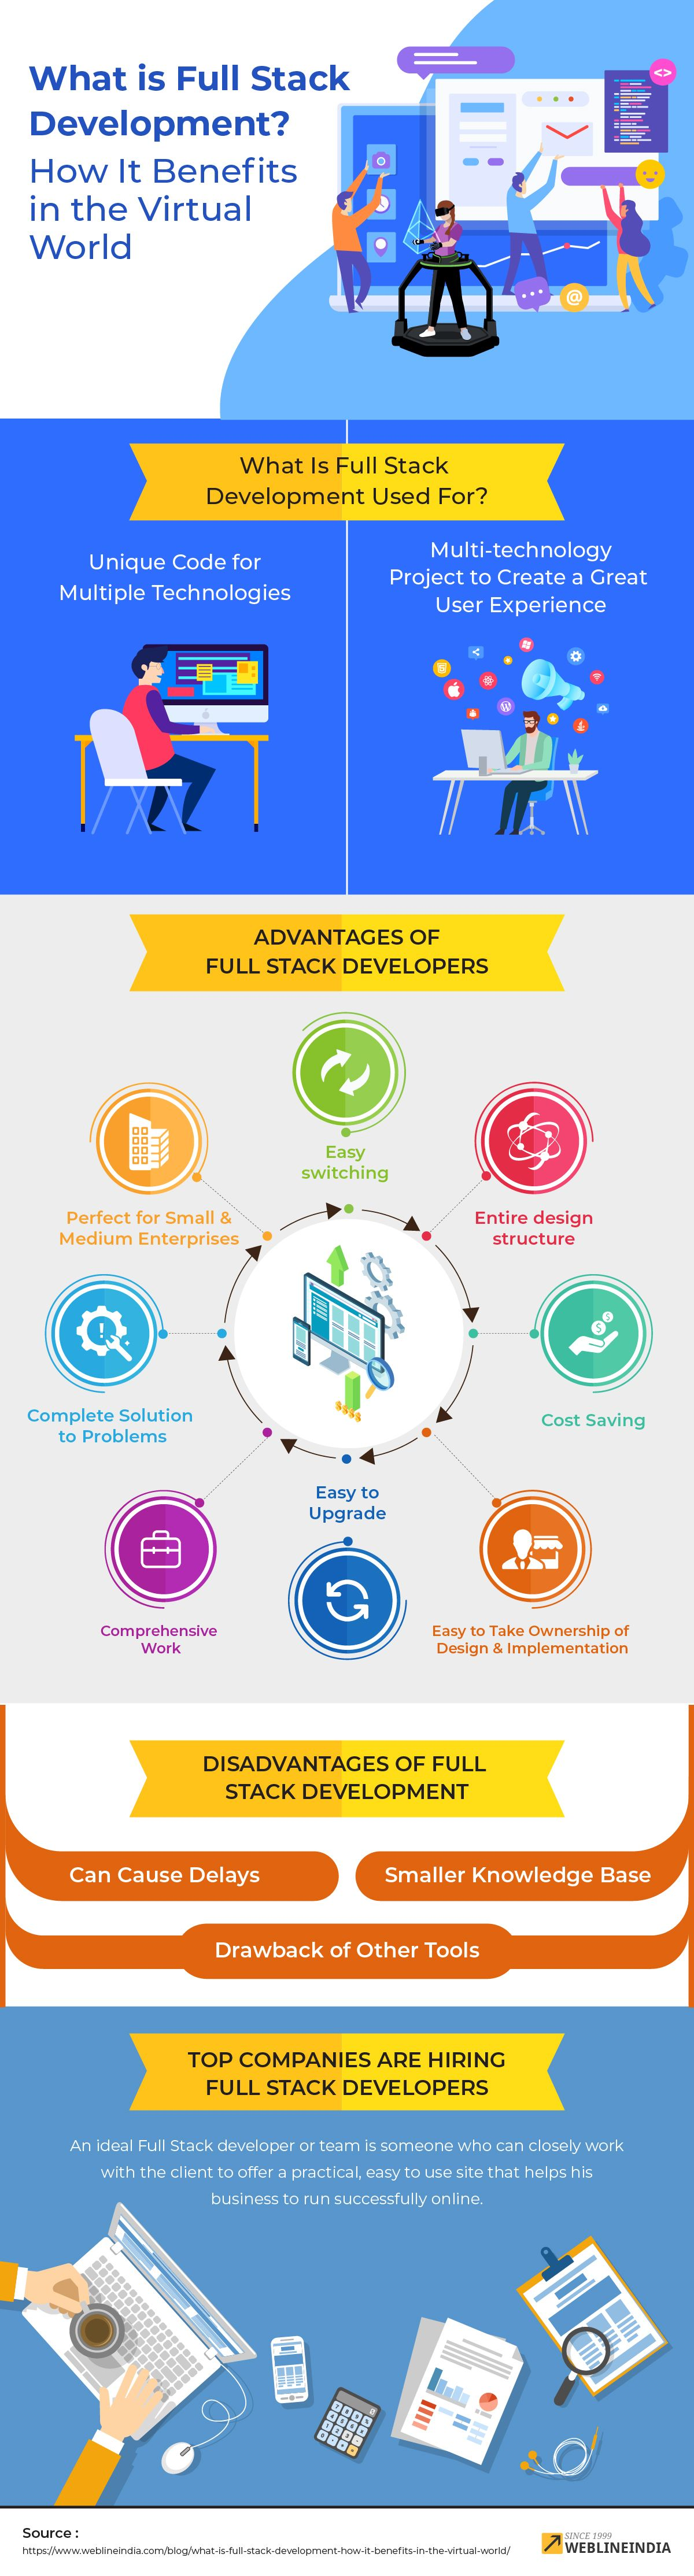 Full stack development how it benefits in the virtual